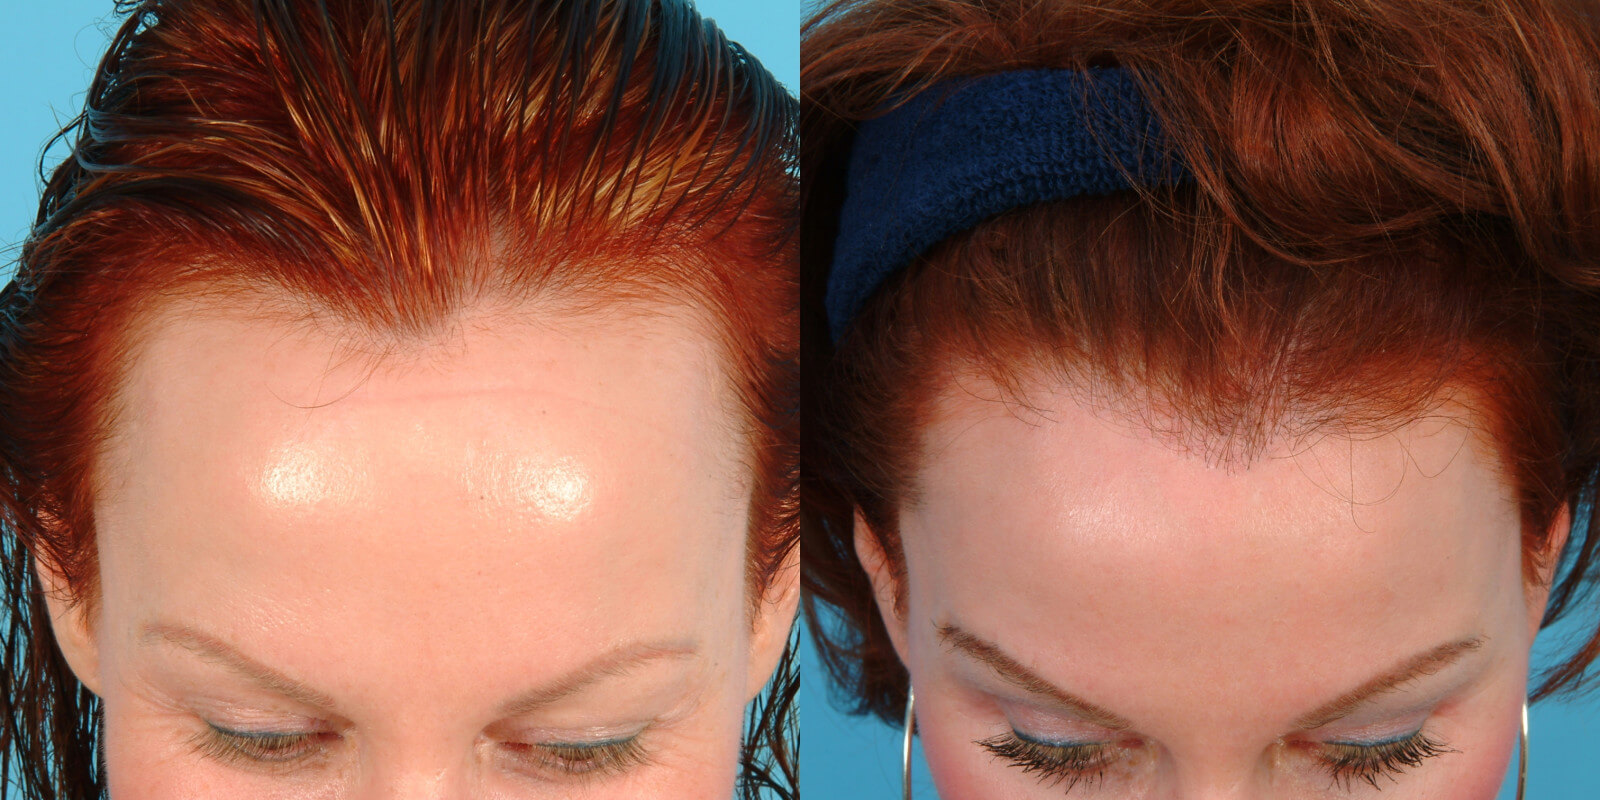 ... hair transplant results women on february 17th 2014 before and after